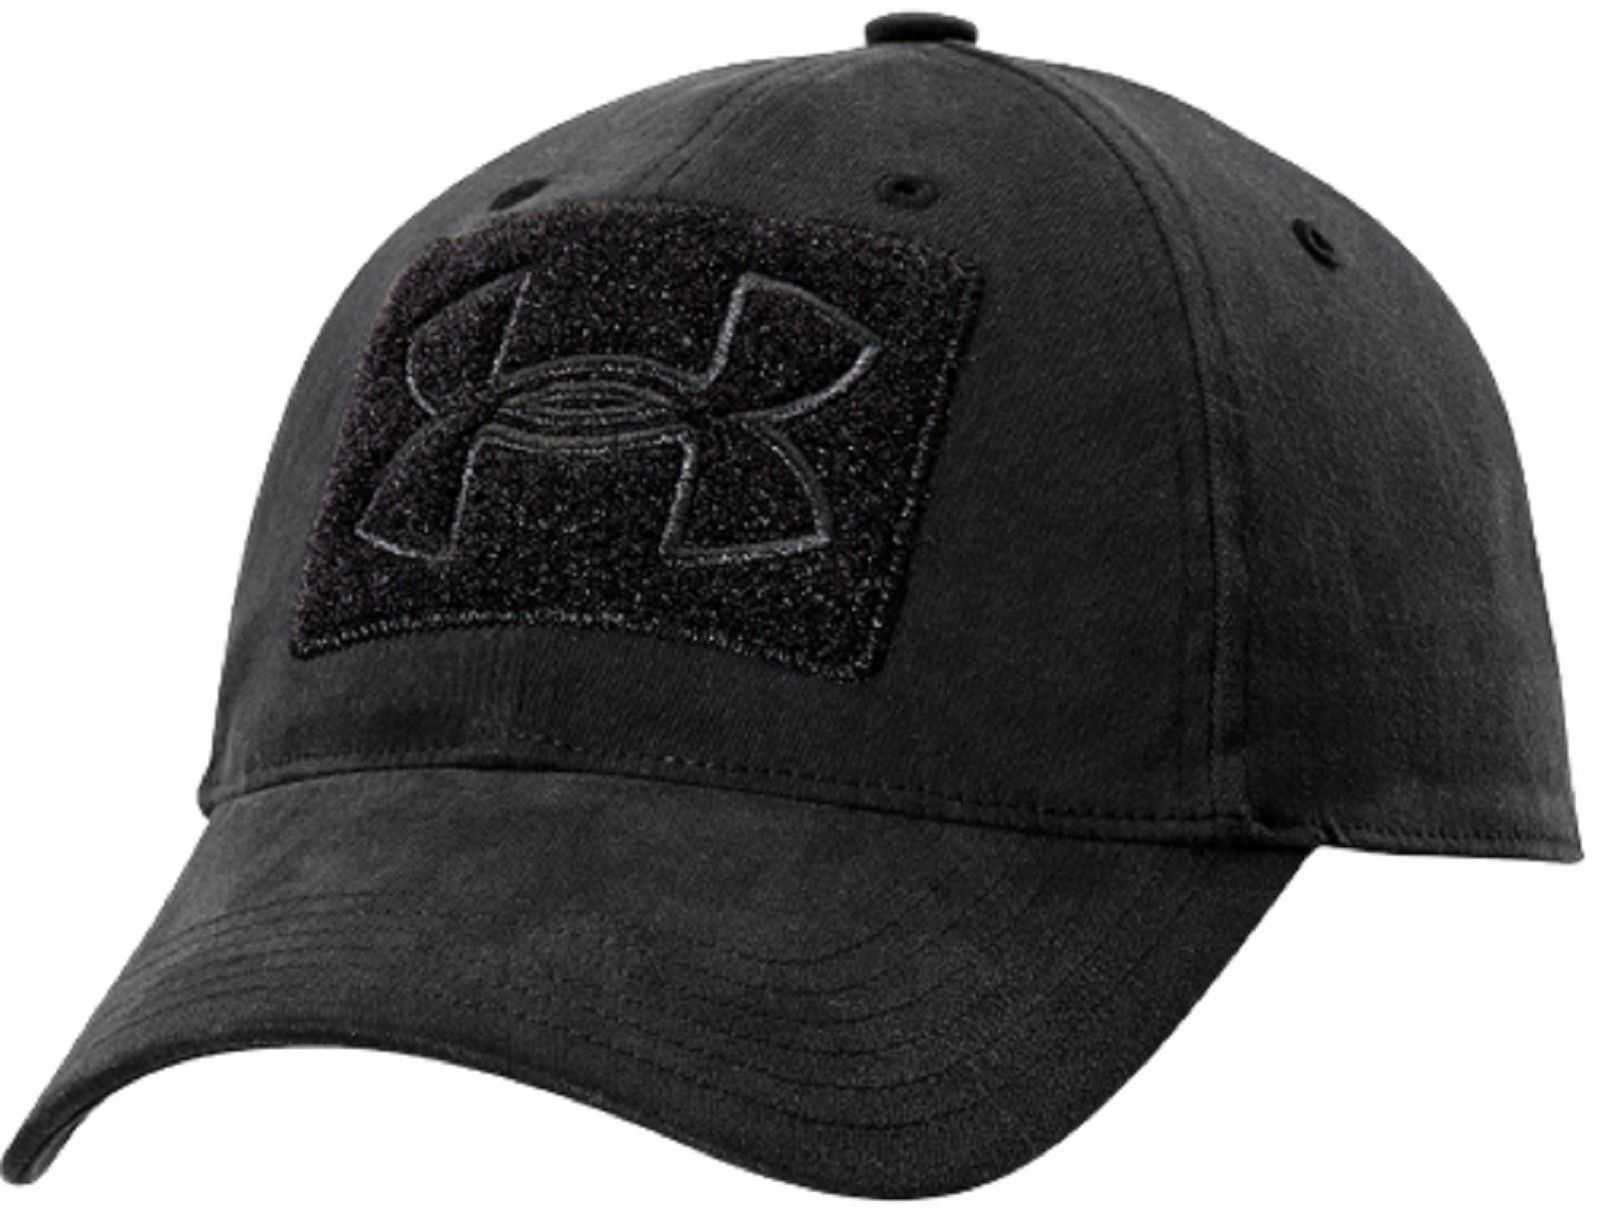 new style 90f4a 1ff43 ... sale under armour tactical patch cap ua black or coyote brown  adjustable tac hat 4df89 694be